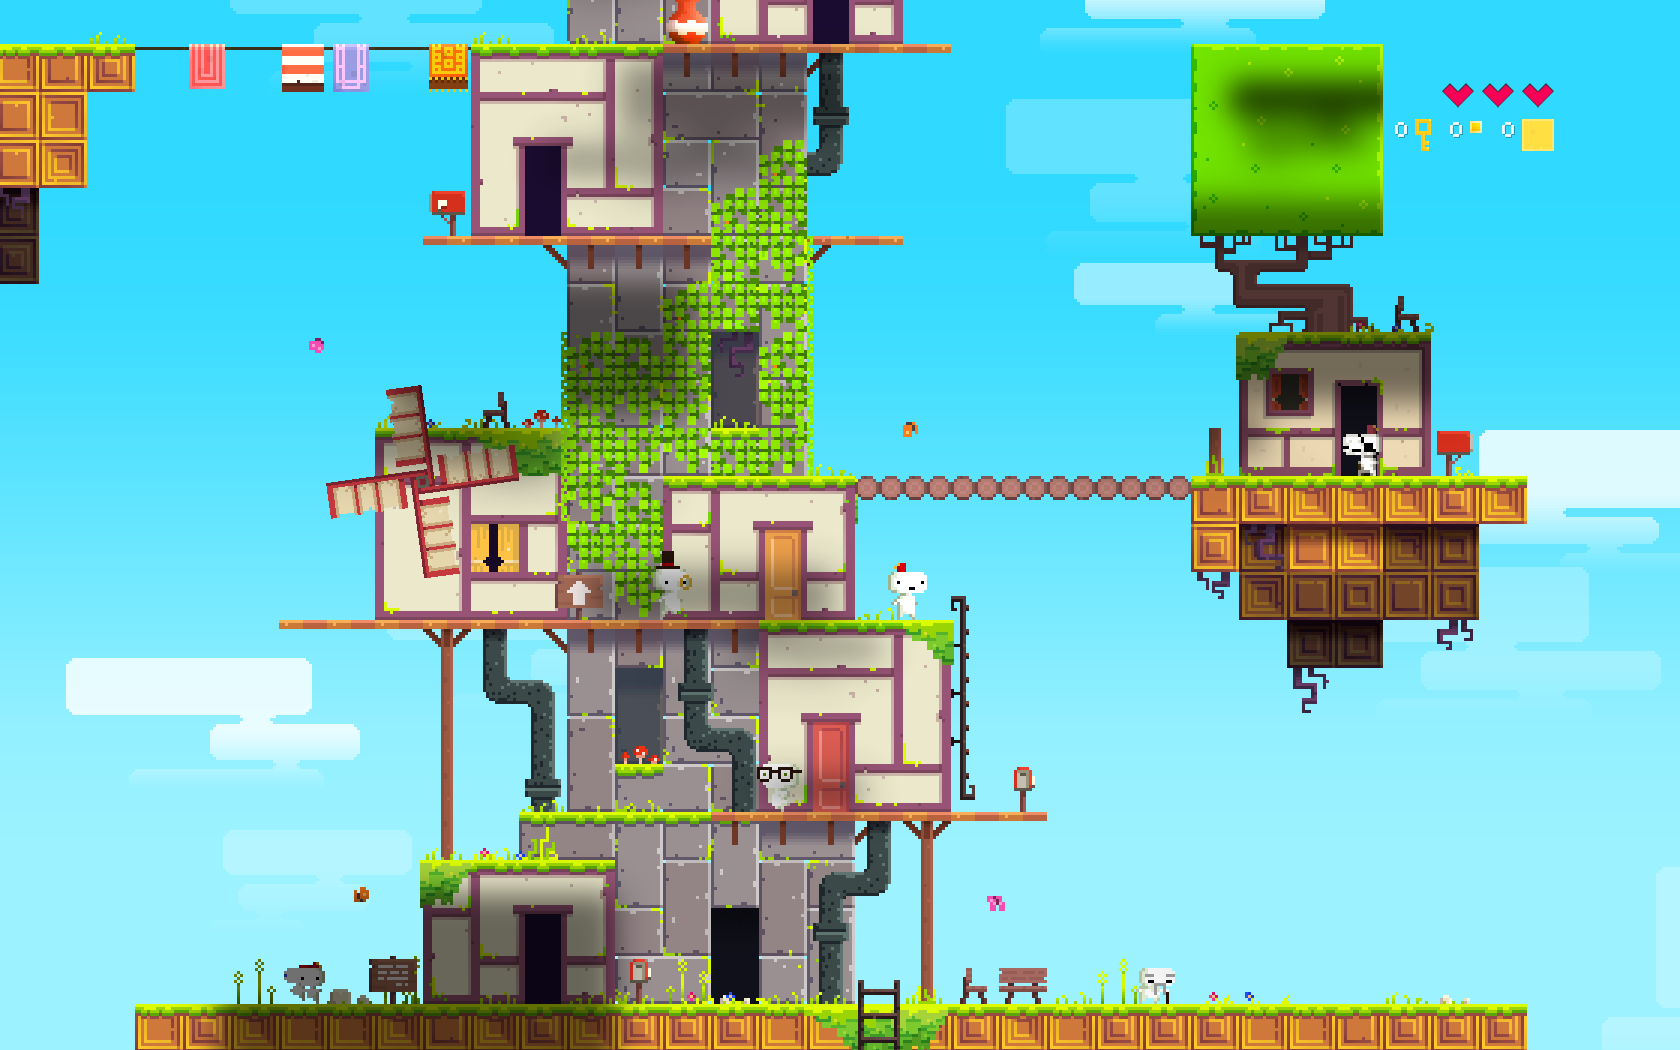 ... Fez launching on PS4, PS3, and Vita on March 25